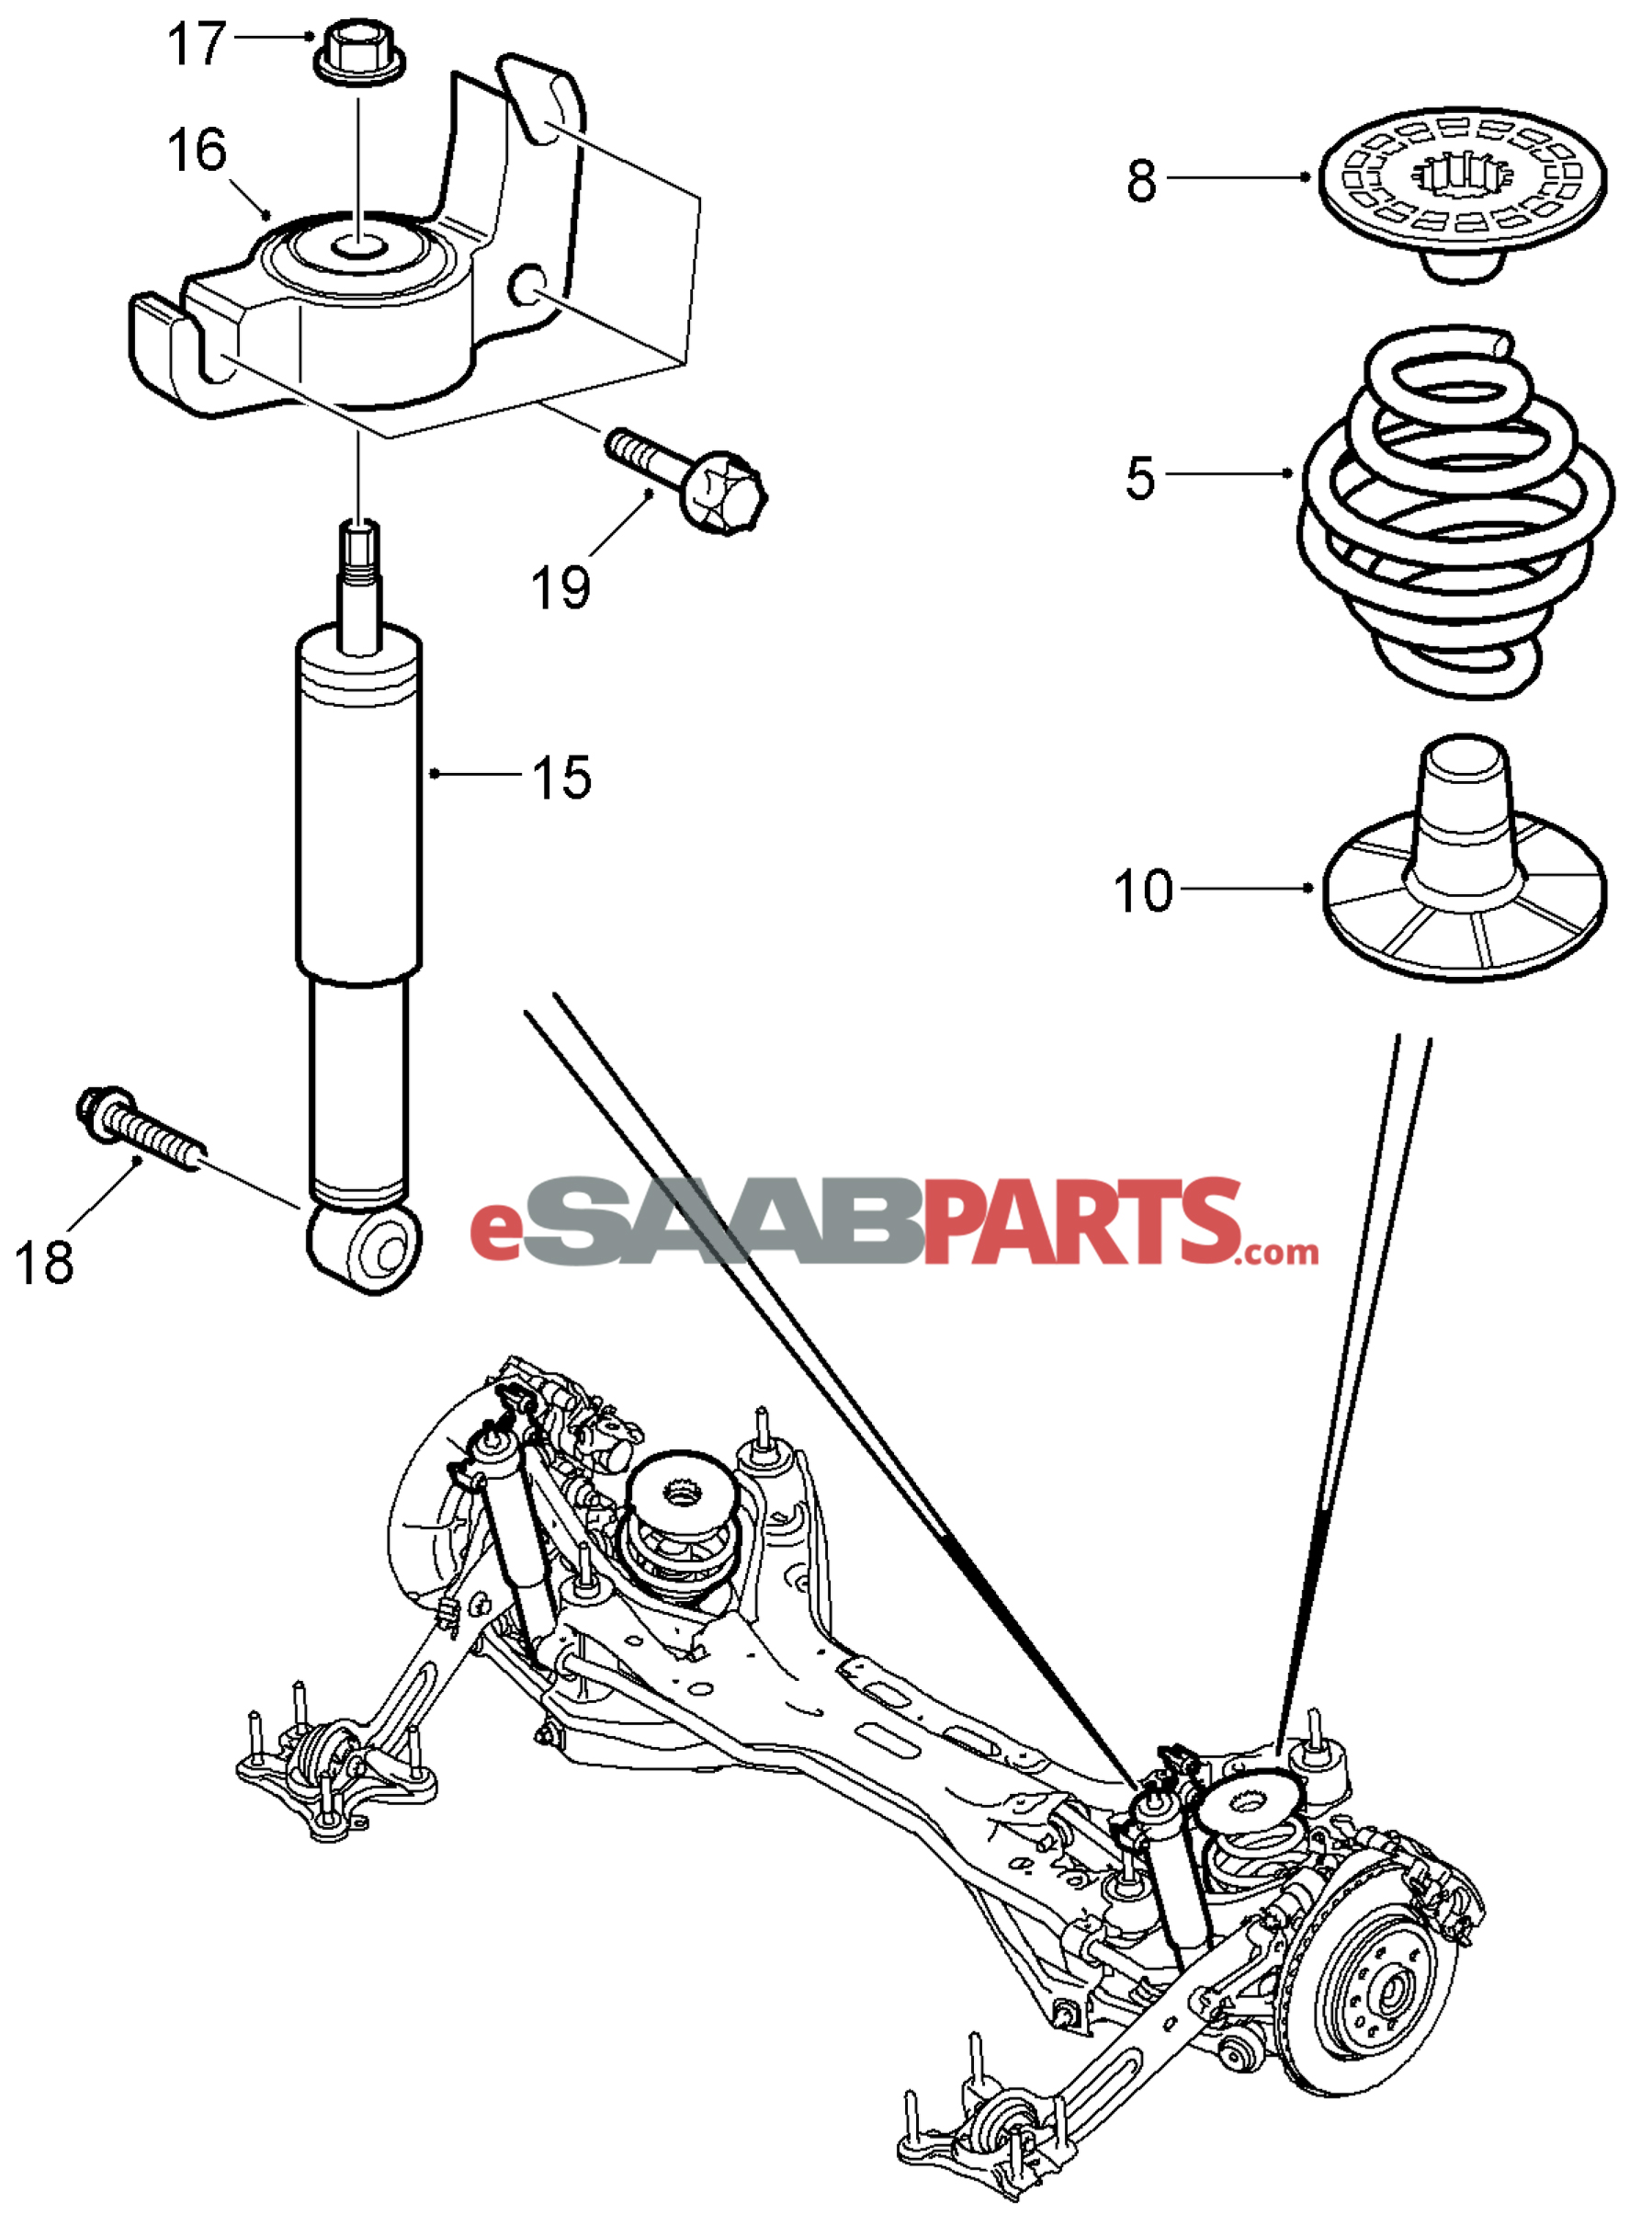 hight resolution of 90538496 saab spring support rear genuine saab parts from saab 9 5 front suspension diagram saab suspension diagram